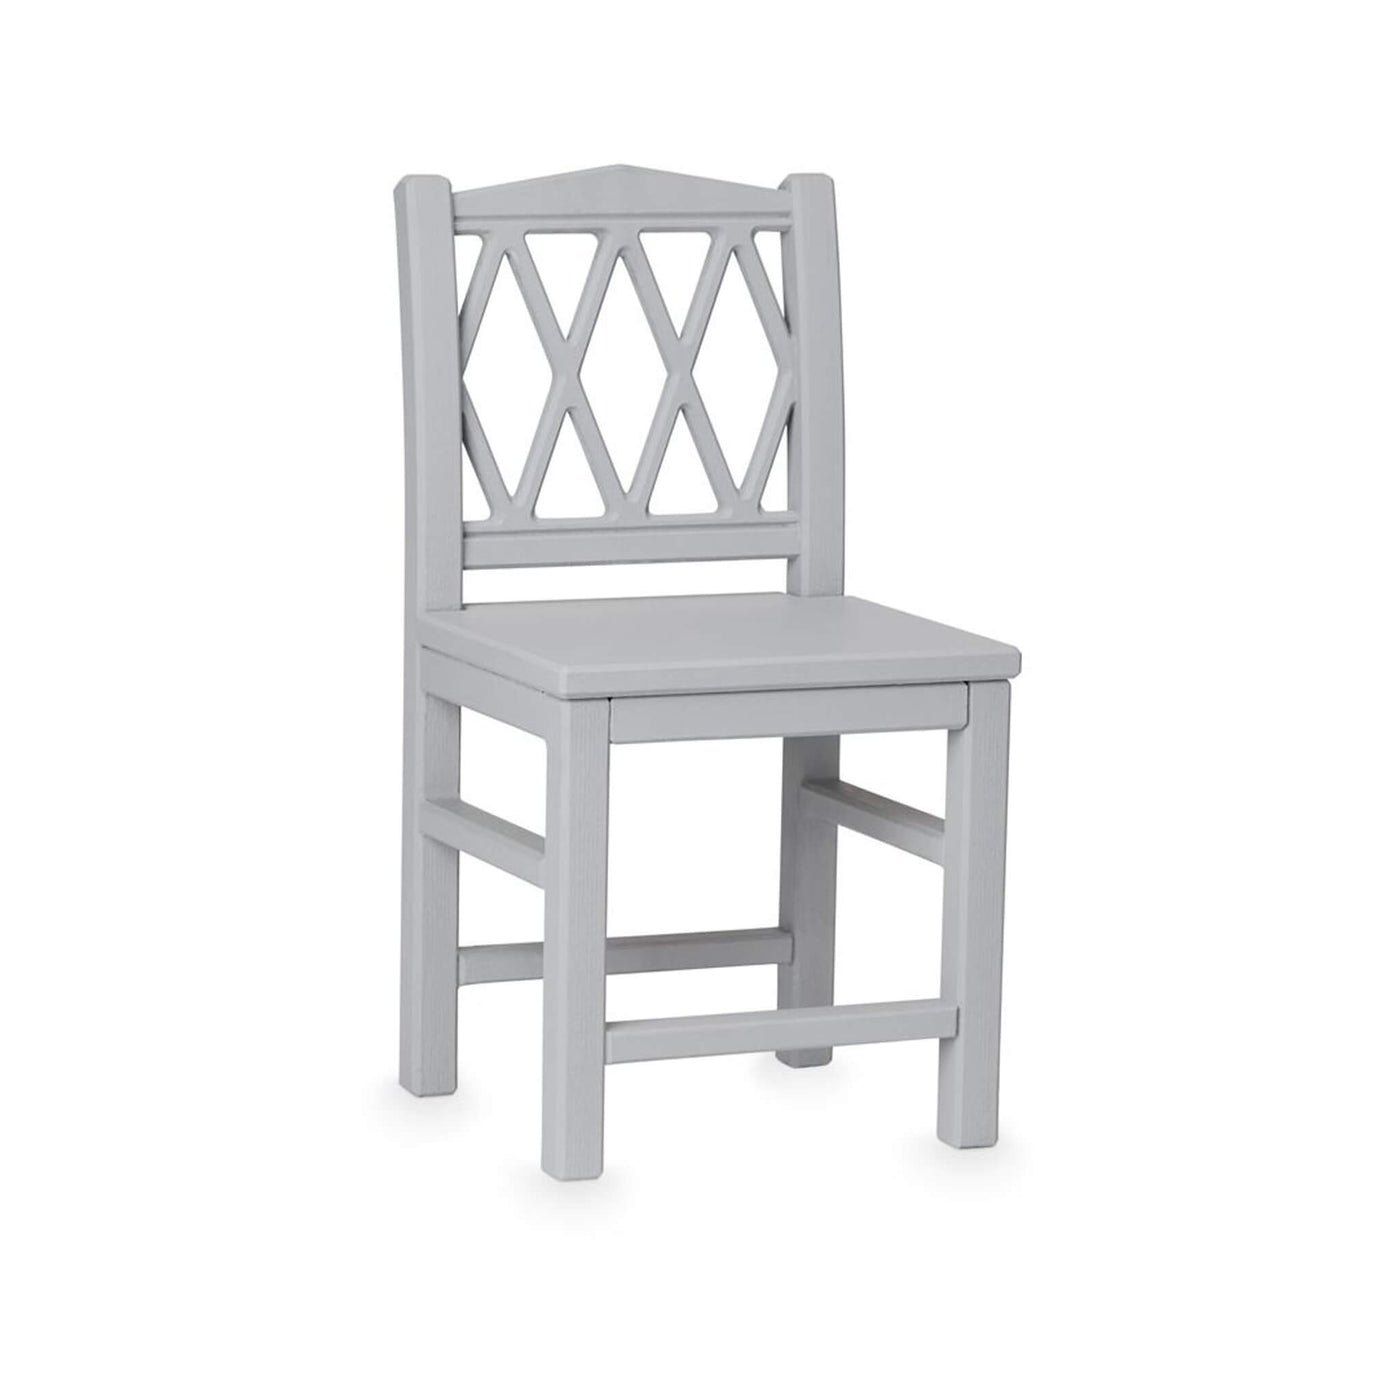 Harlequin Chair - Grey